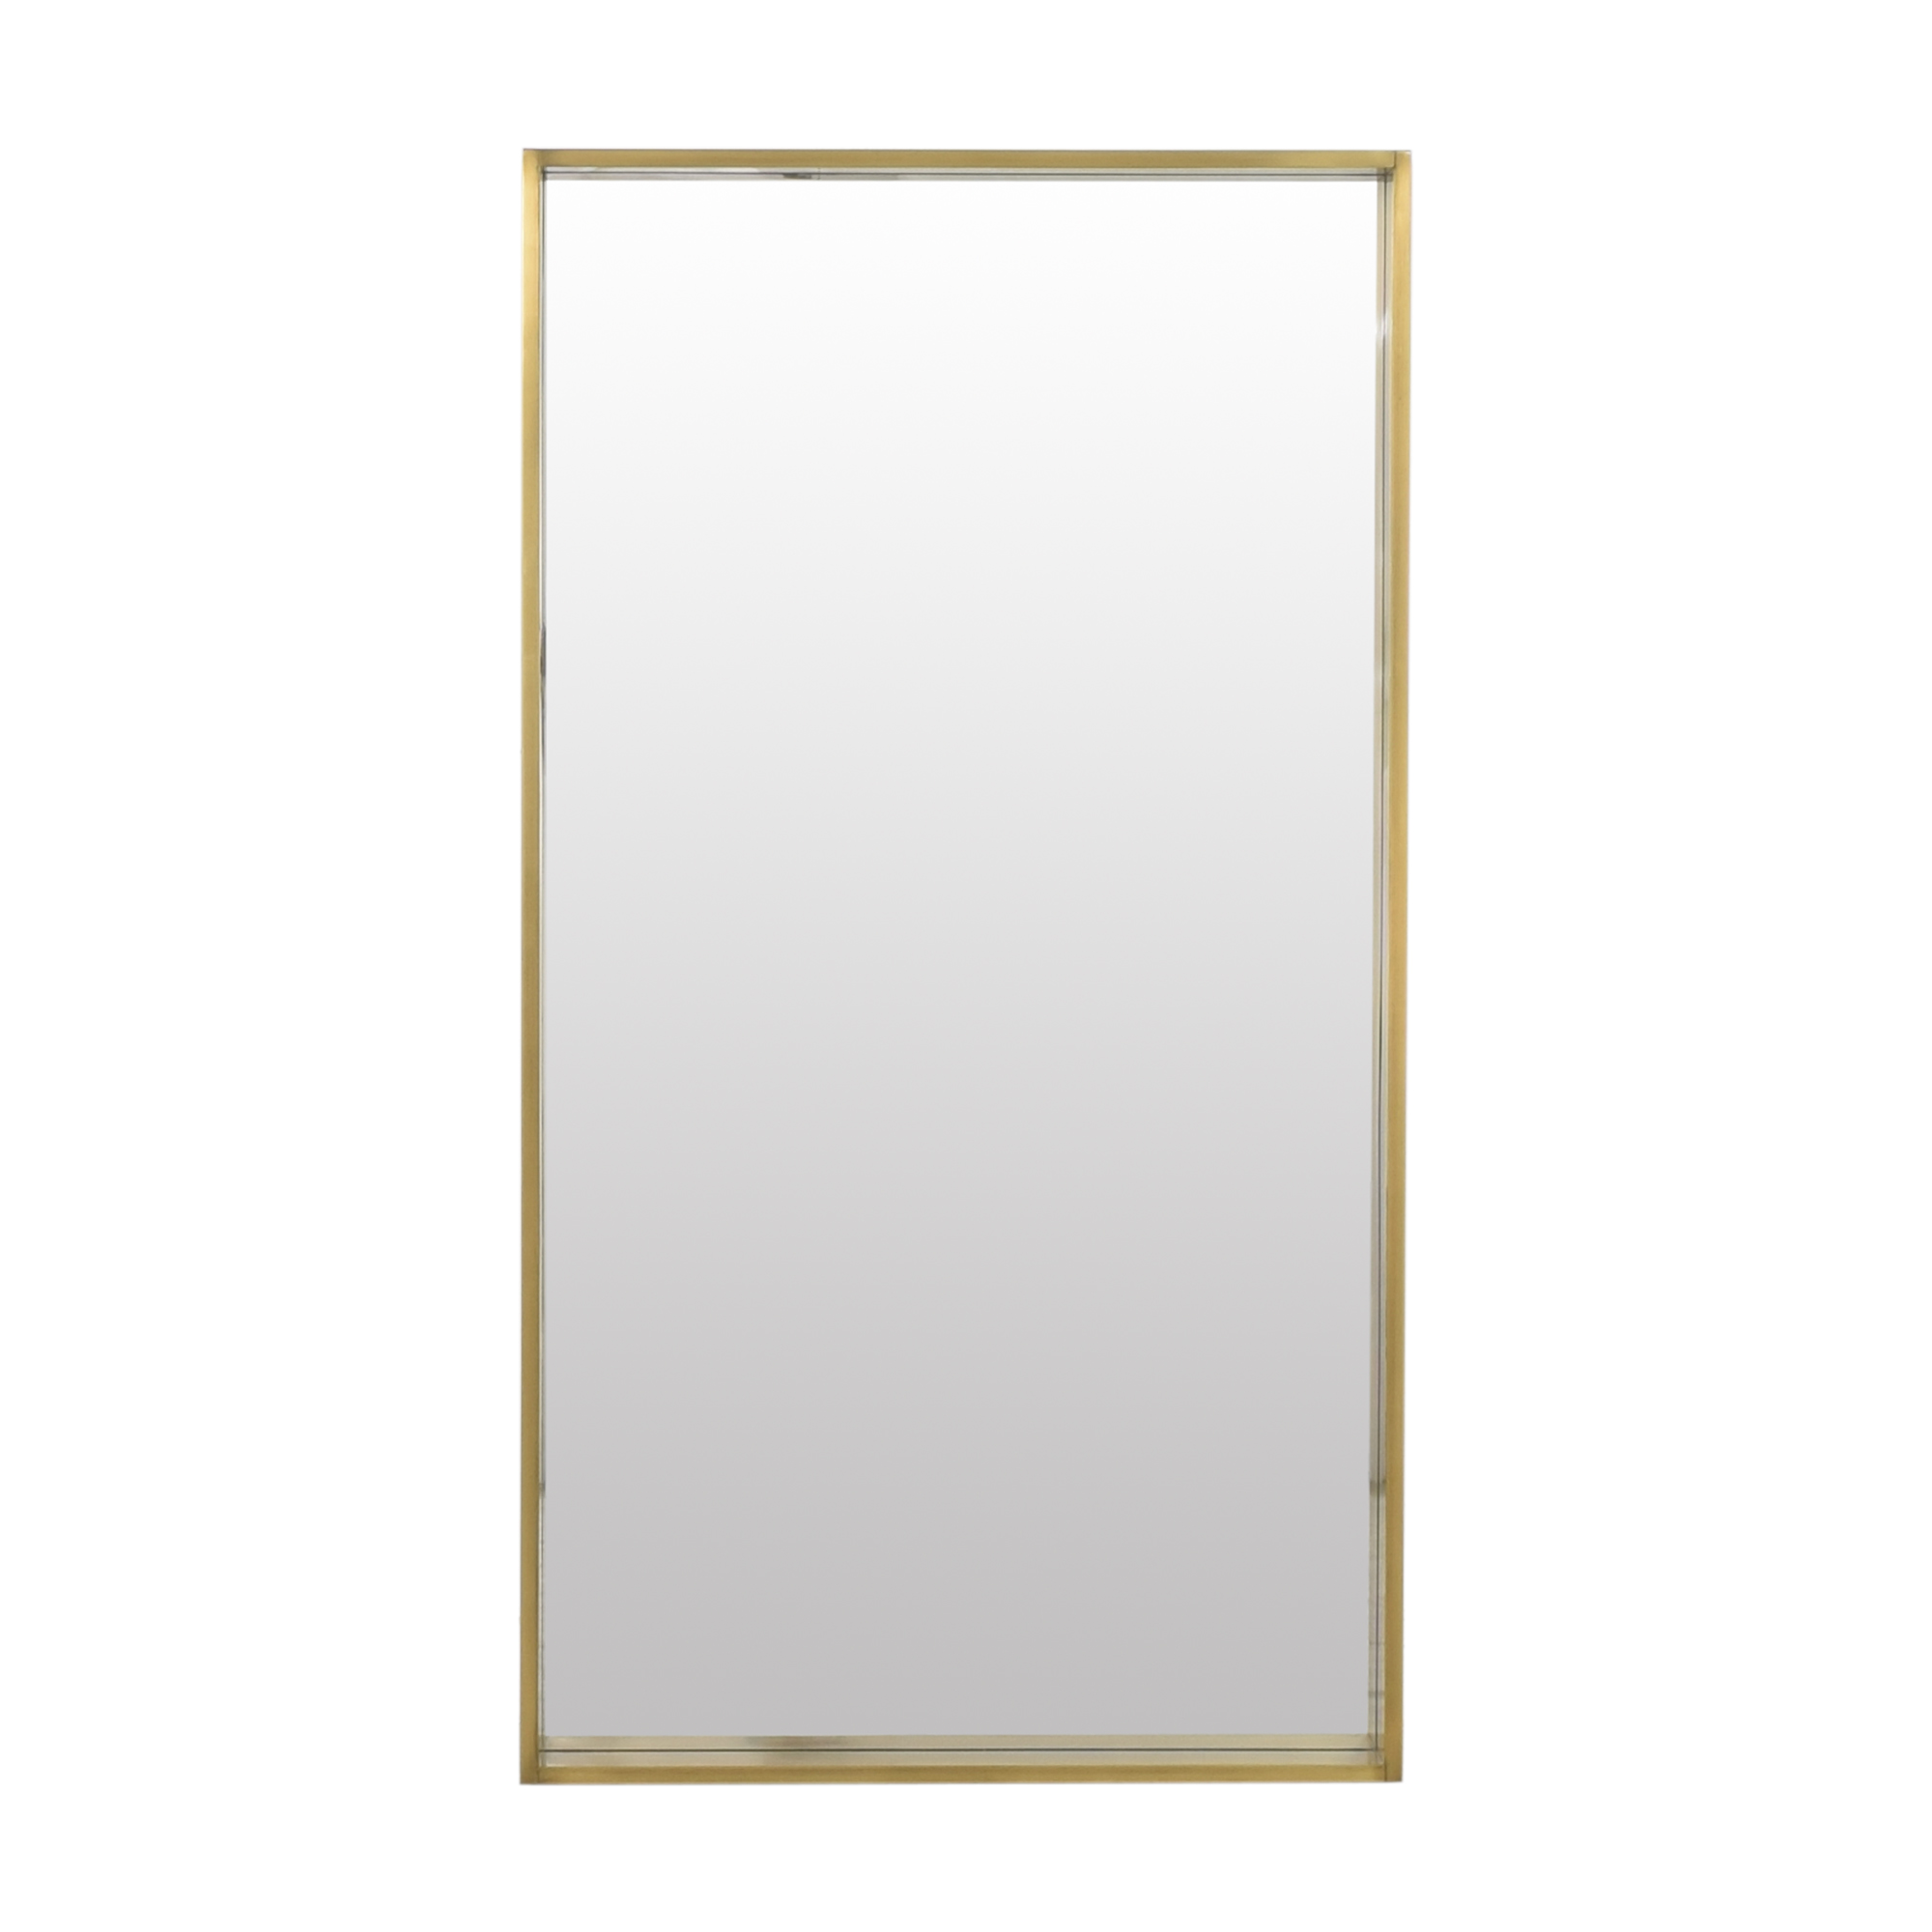 Restoration Hardware Restoration Hardware Dovetail Narrow Frame Mirror price